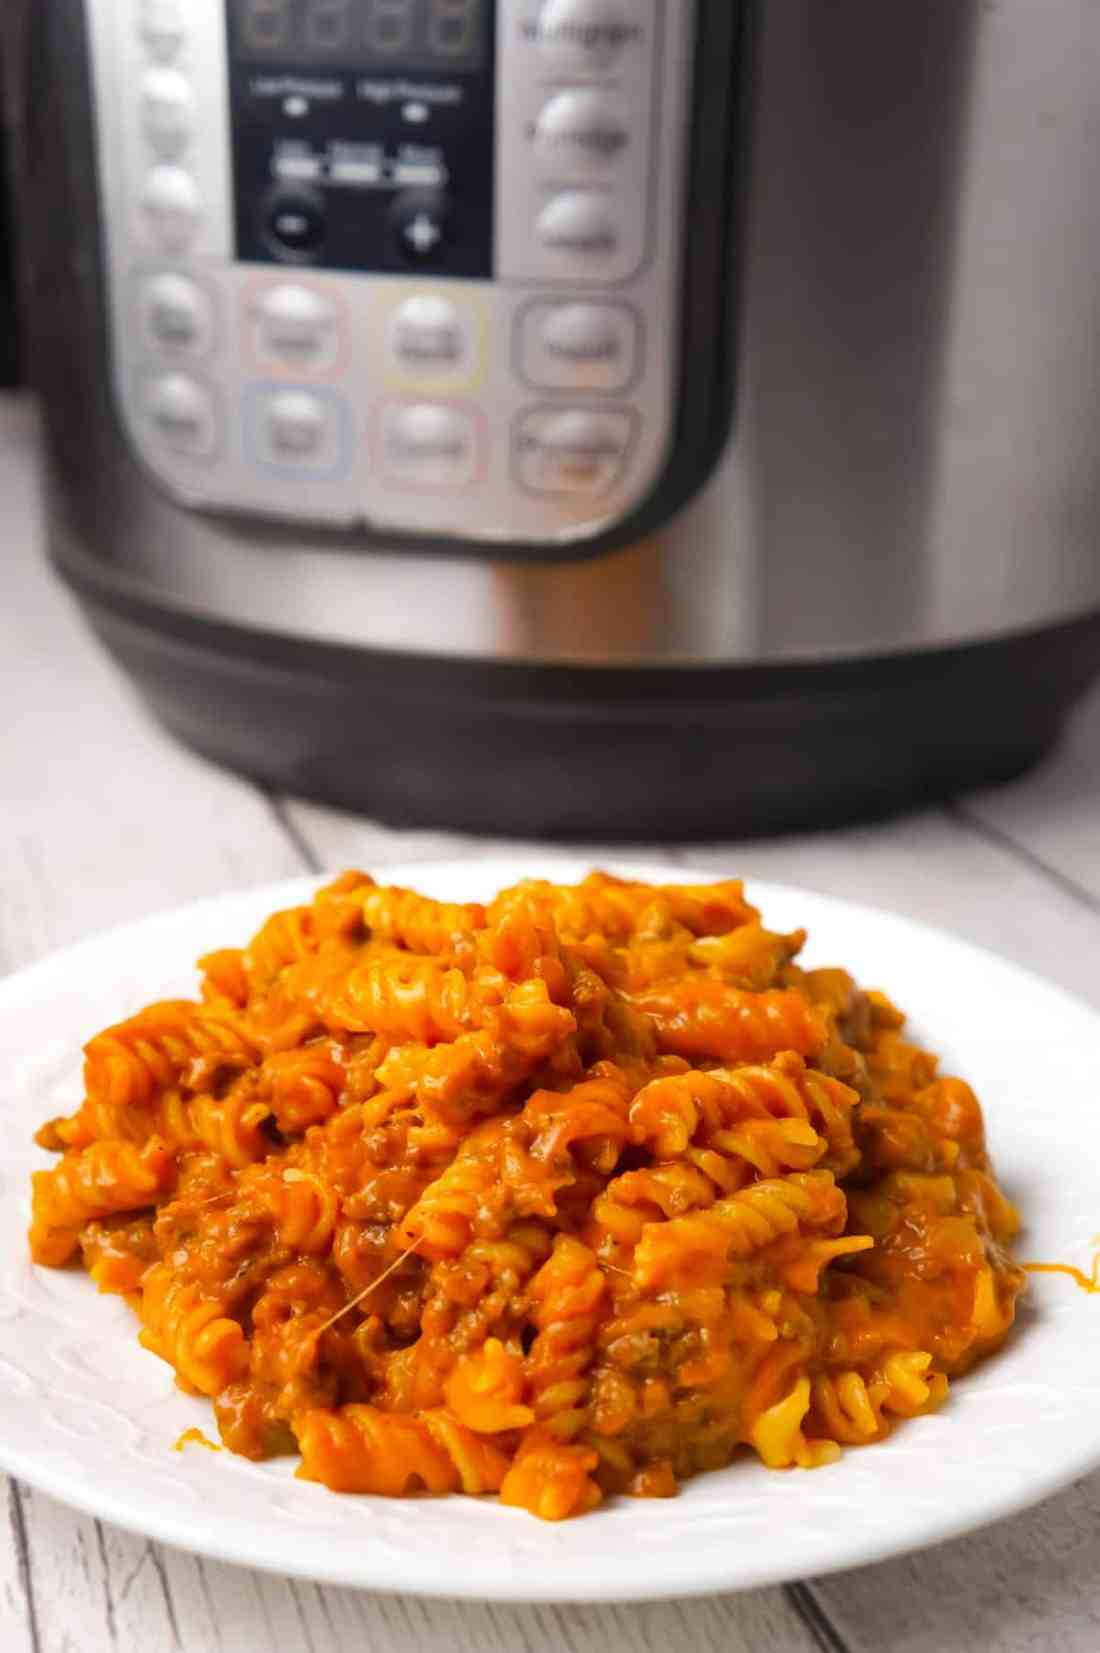 Instant Pot Cheesy Sloppy Joe Pasta is an easy gluten free pasta recipe loaded with ground beef, homemade sloppy joe sauce, mozzarella and cheddar cheese.